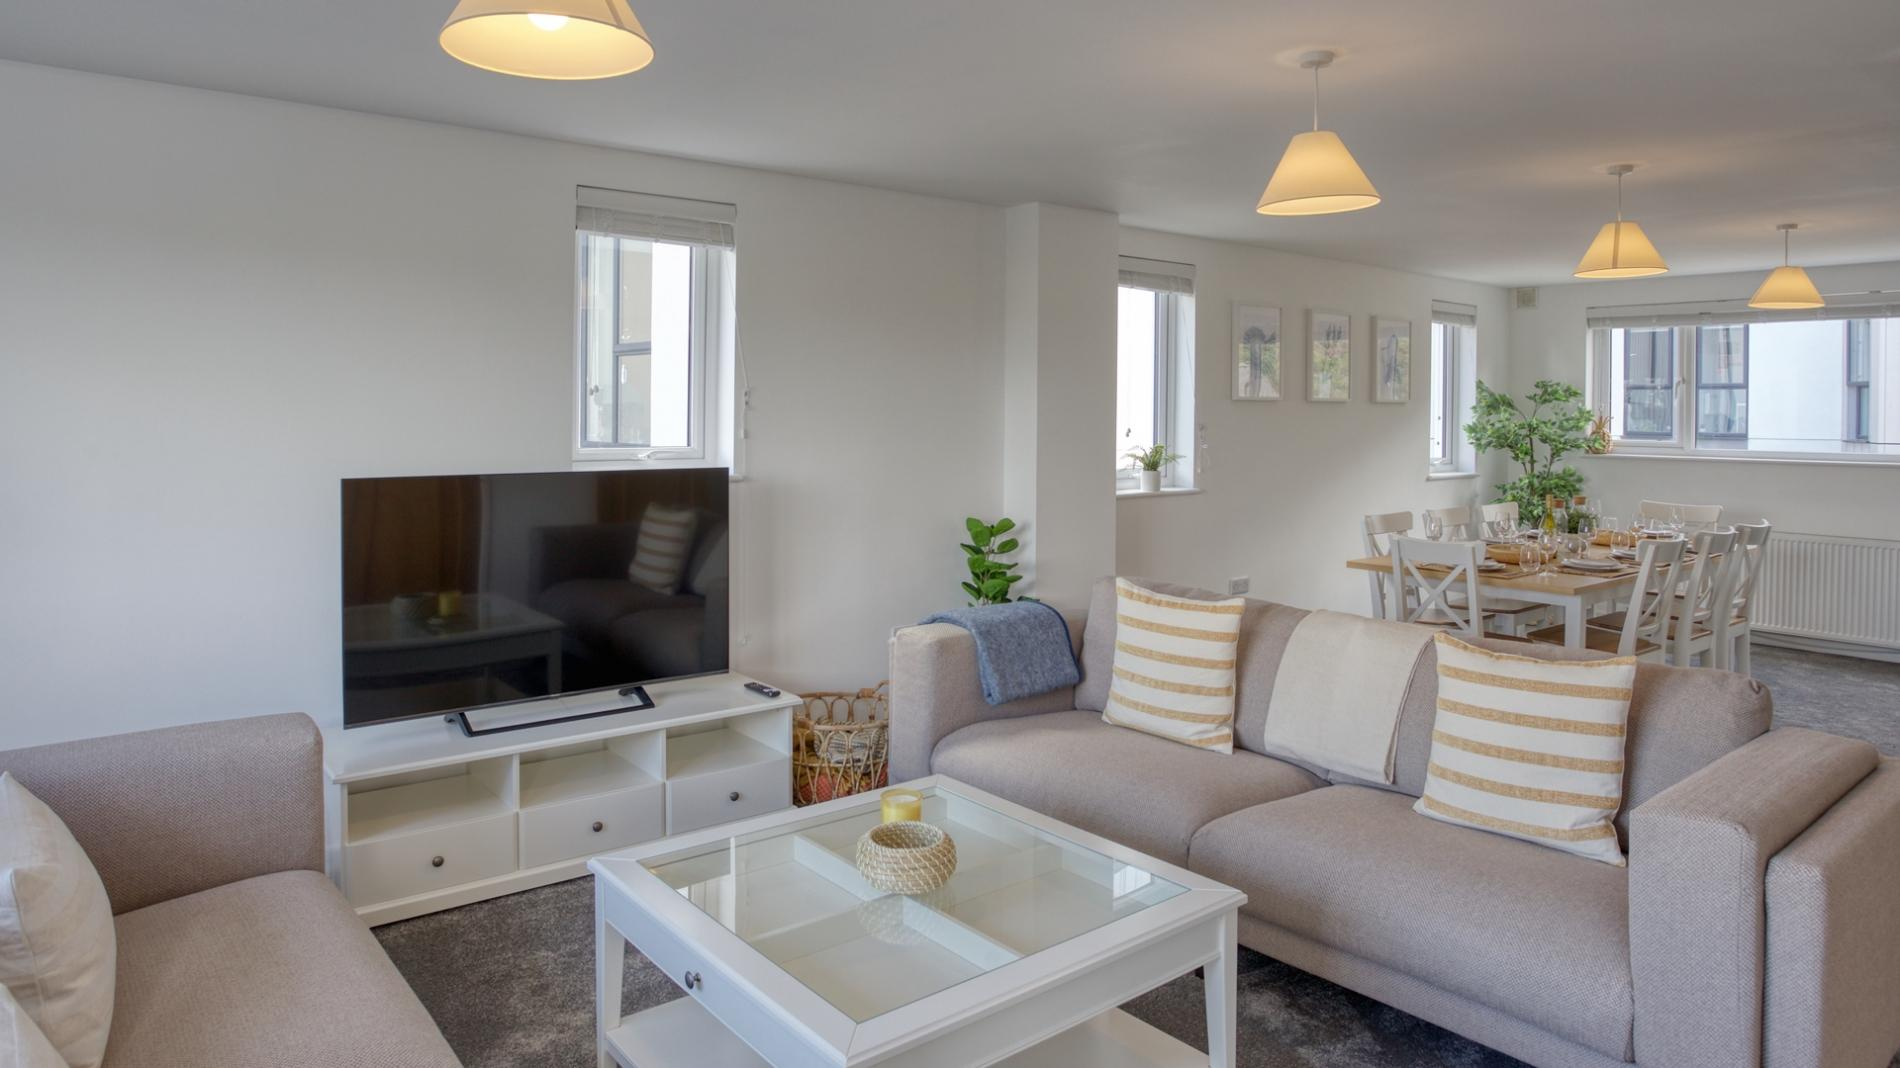 Fantastic sea views in Falmouth, new 4BD townhouse